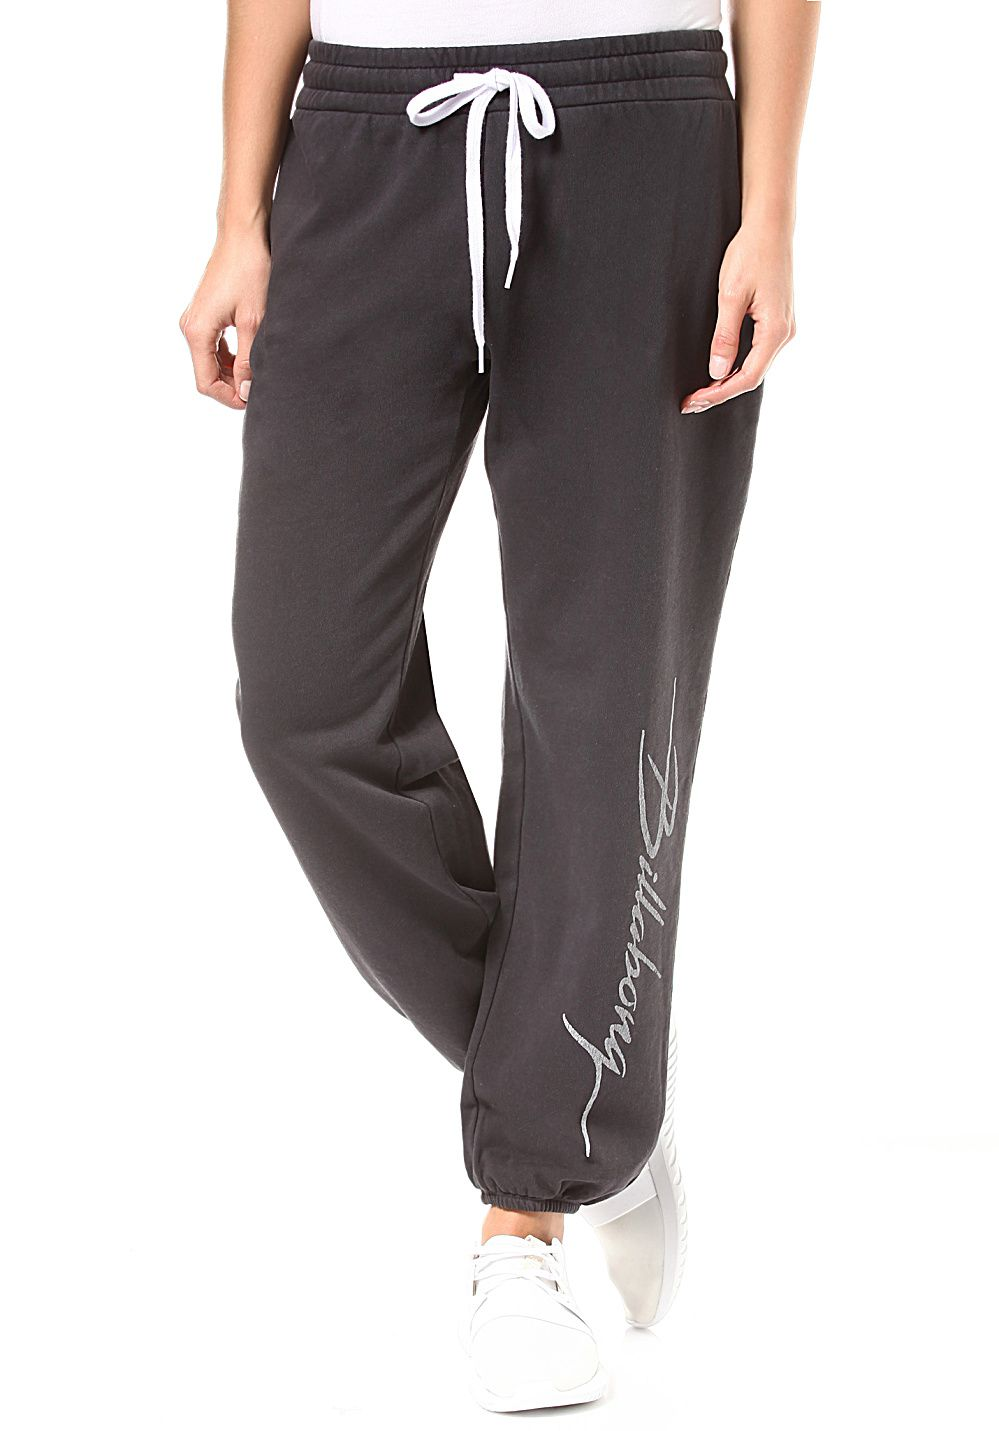 BILLABONG Paradise Found - Trousers for Women - Black - buy now on PLANET  SPORTS online e9e6fa162ae